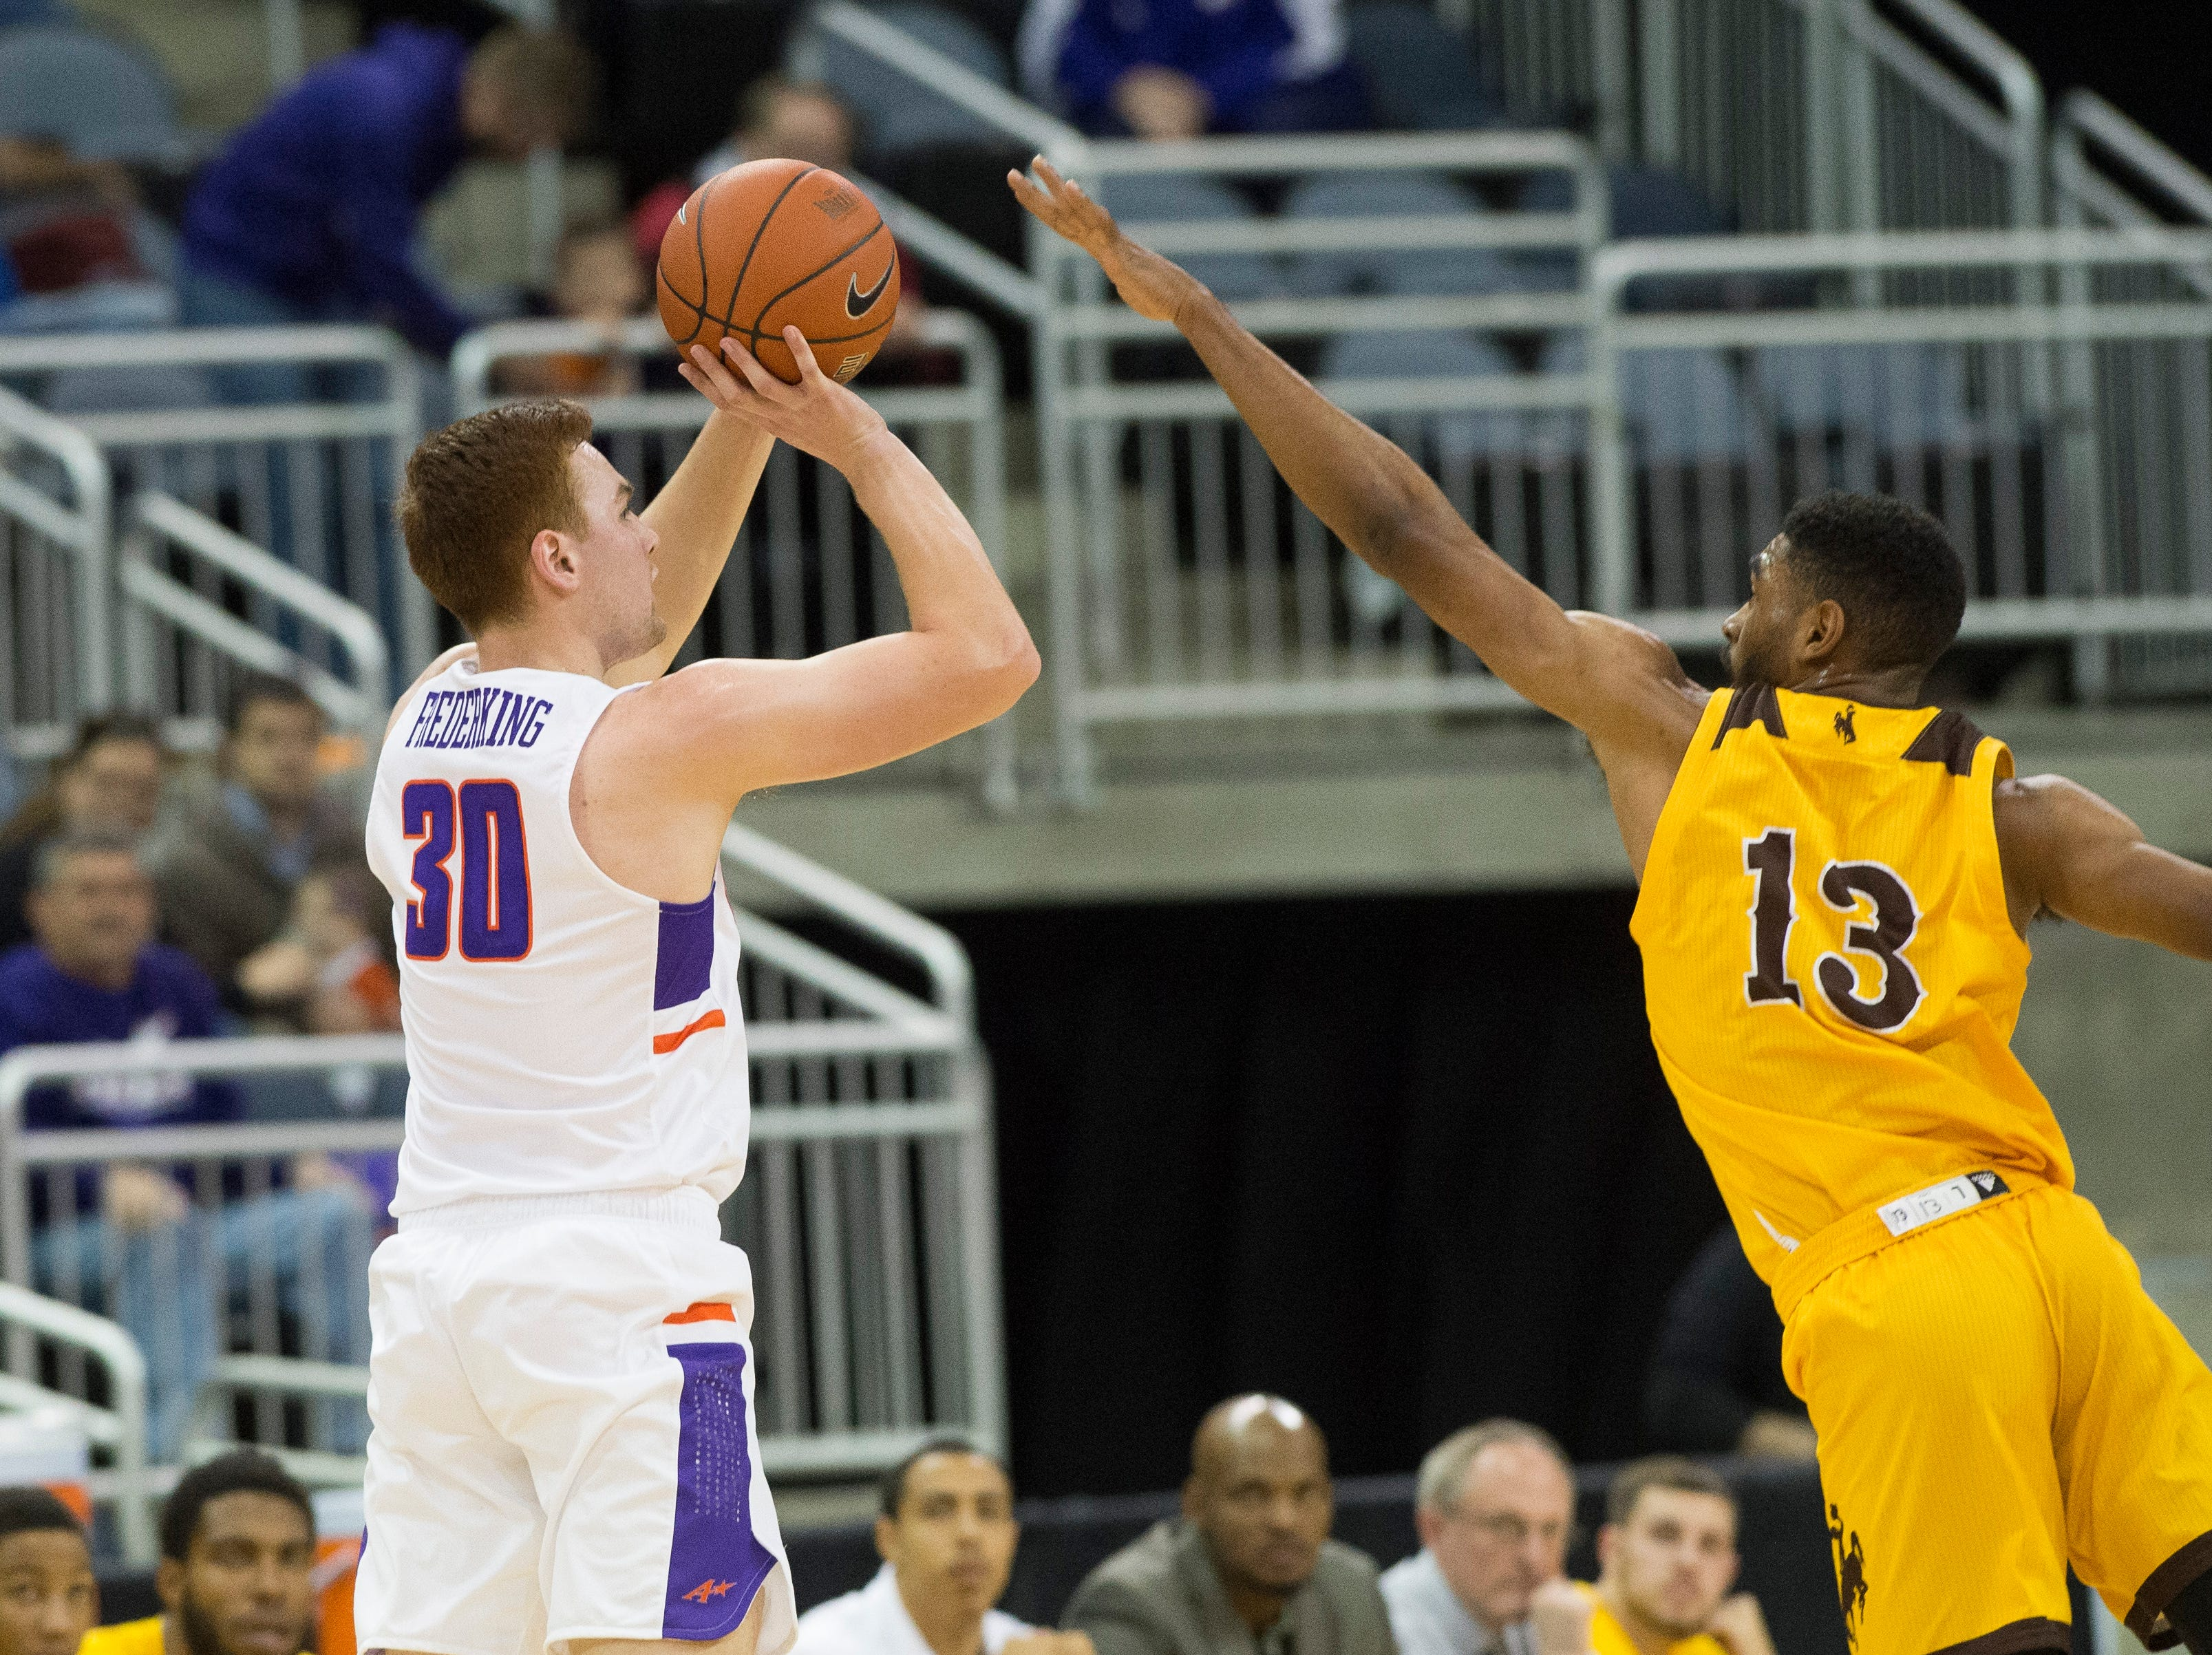 """Wyoming's Trevon """"TJ"""" Taylor (13) attempts to block UE's Noah Frederking (30) 3-point shot during the UE vs Wyoming game at the Ford Center Wednesday, Nov. 28, 2018. UE won 86-76."""